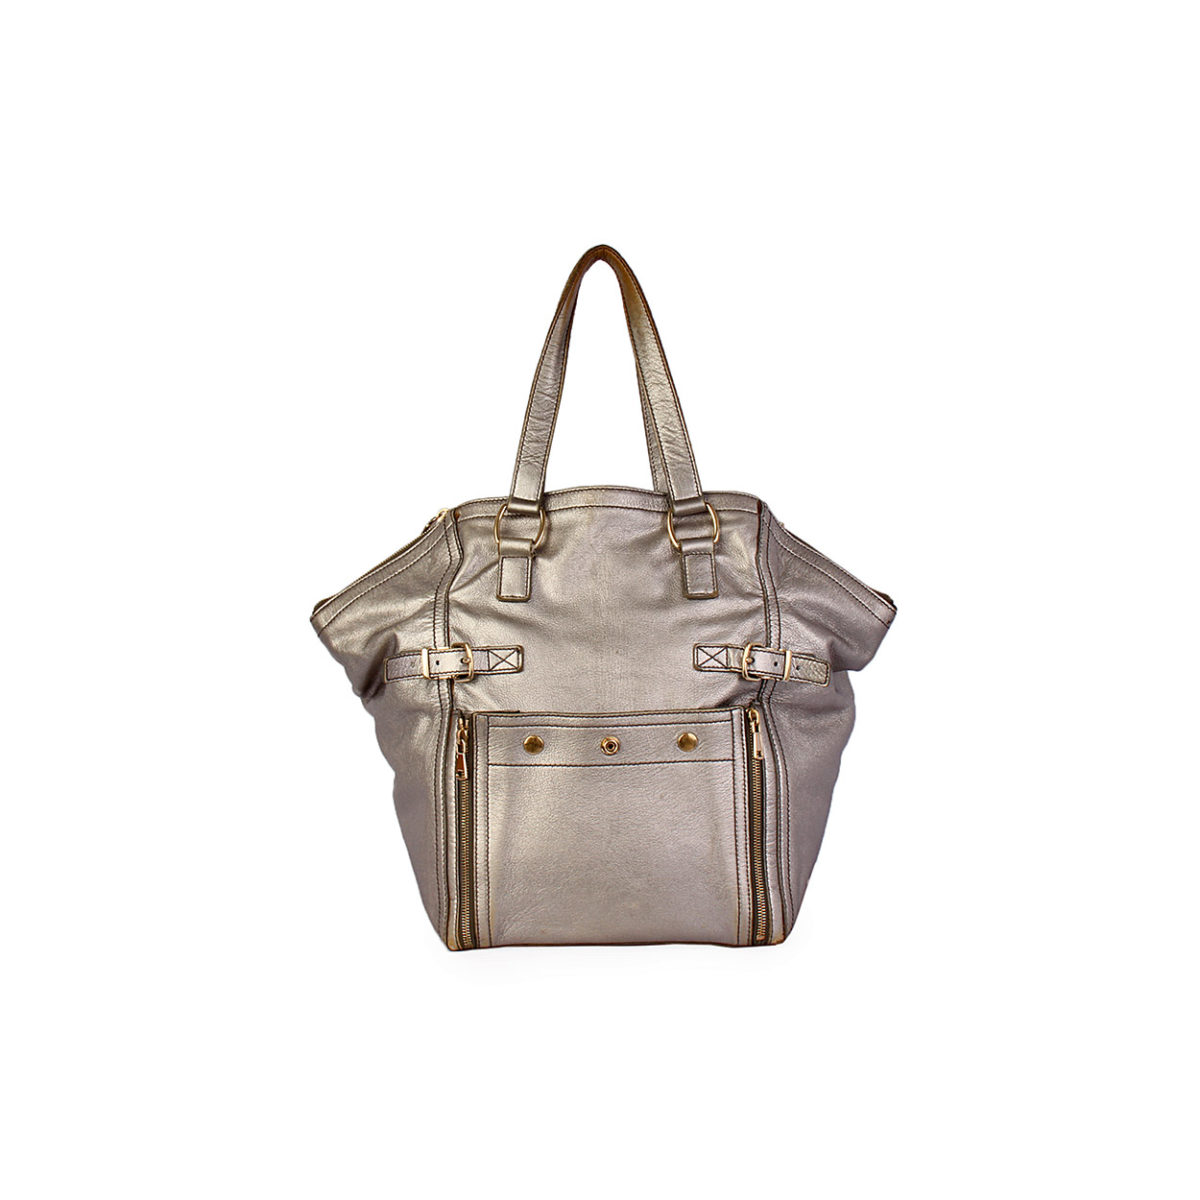 df38ffd42728 YVES SAINT LAURENT Metallic Leather Large Downtown Tote Silver - Luxity